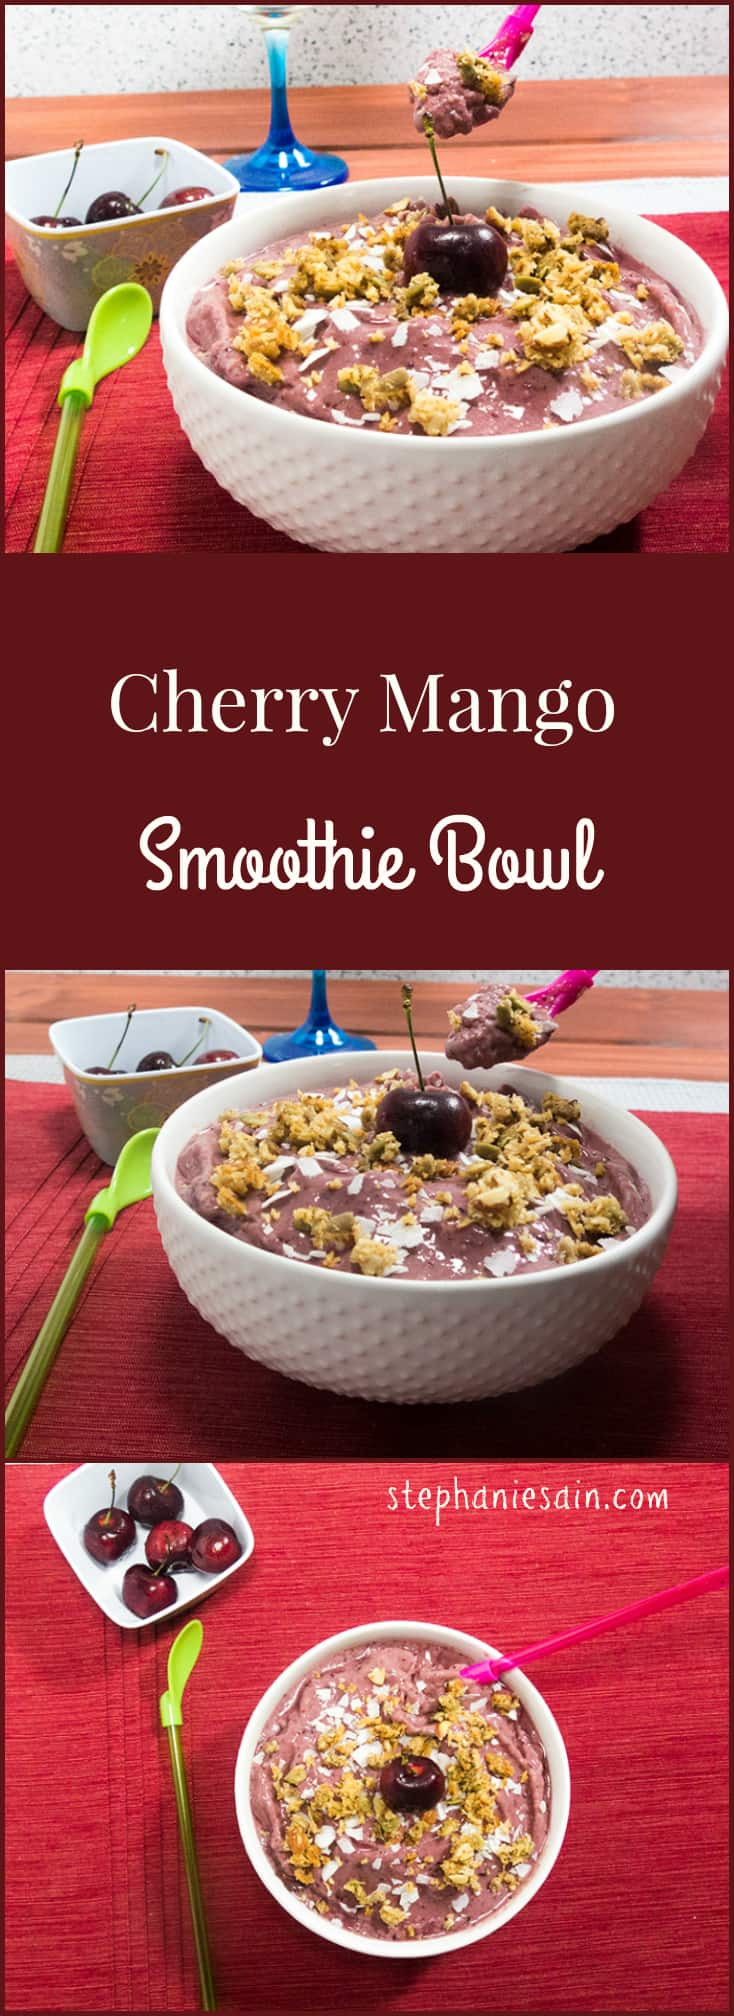 Cherry Mango Smoothie Bowl is packed with cherries and mangos for the perfect breakfast or snack. Toppings customizable.